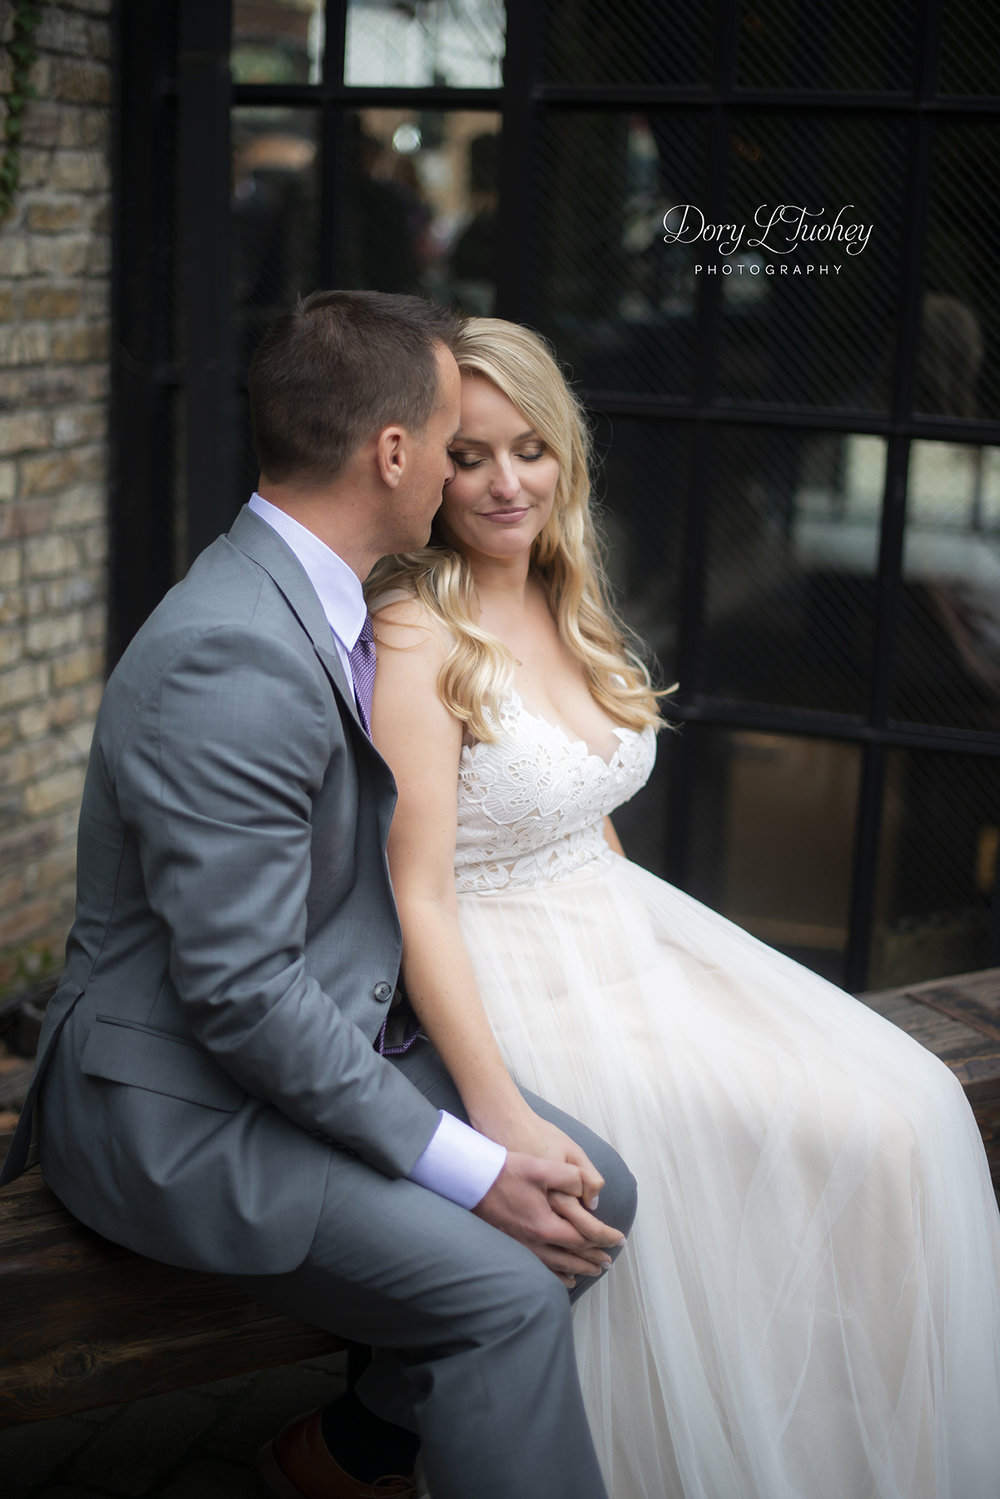 Rookery_chicago_dory_photographer_wedding_stairs_bhldn_love_dawson_12.jpg